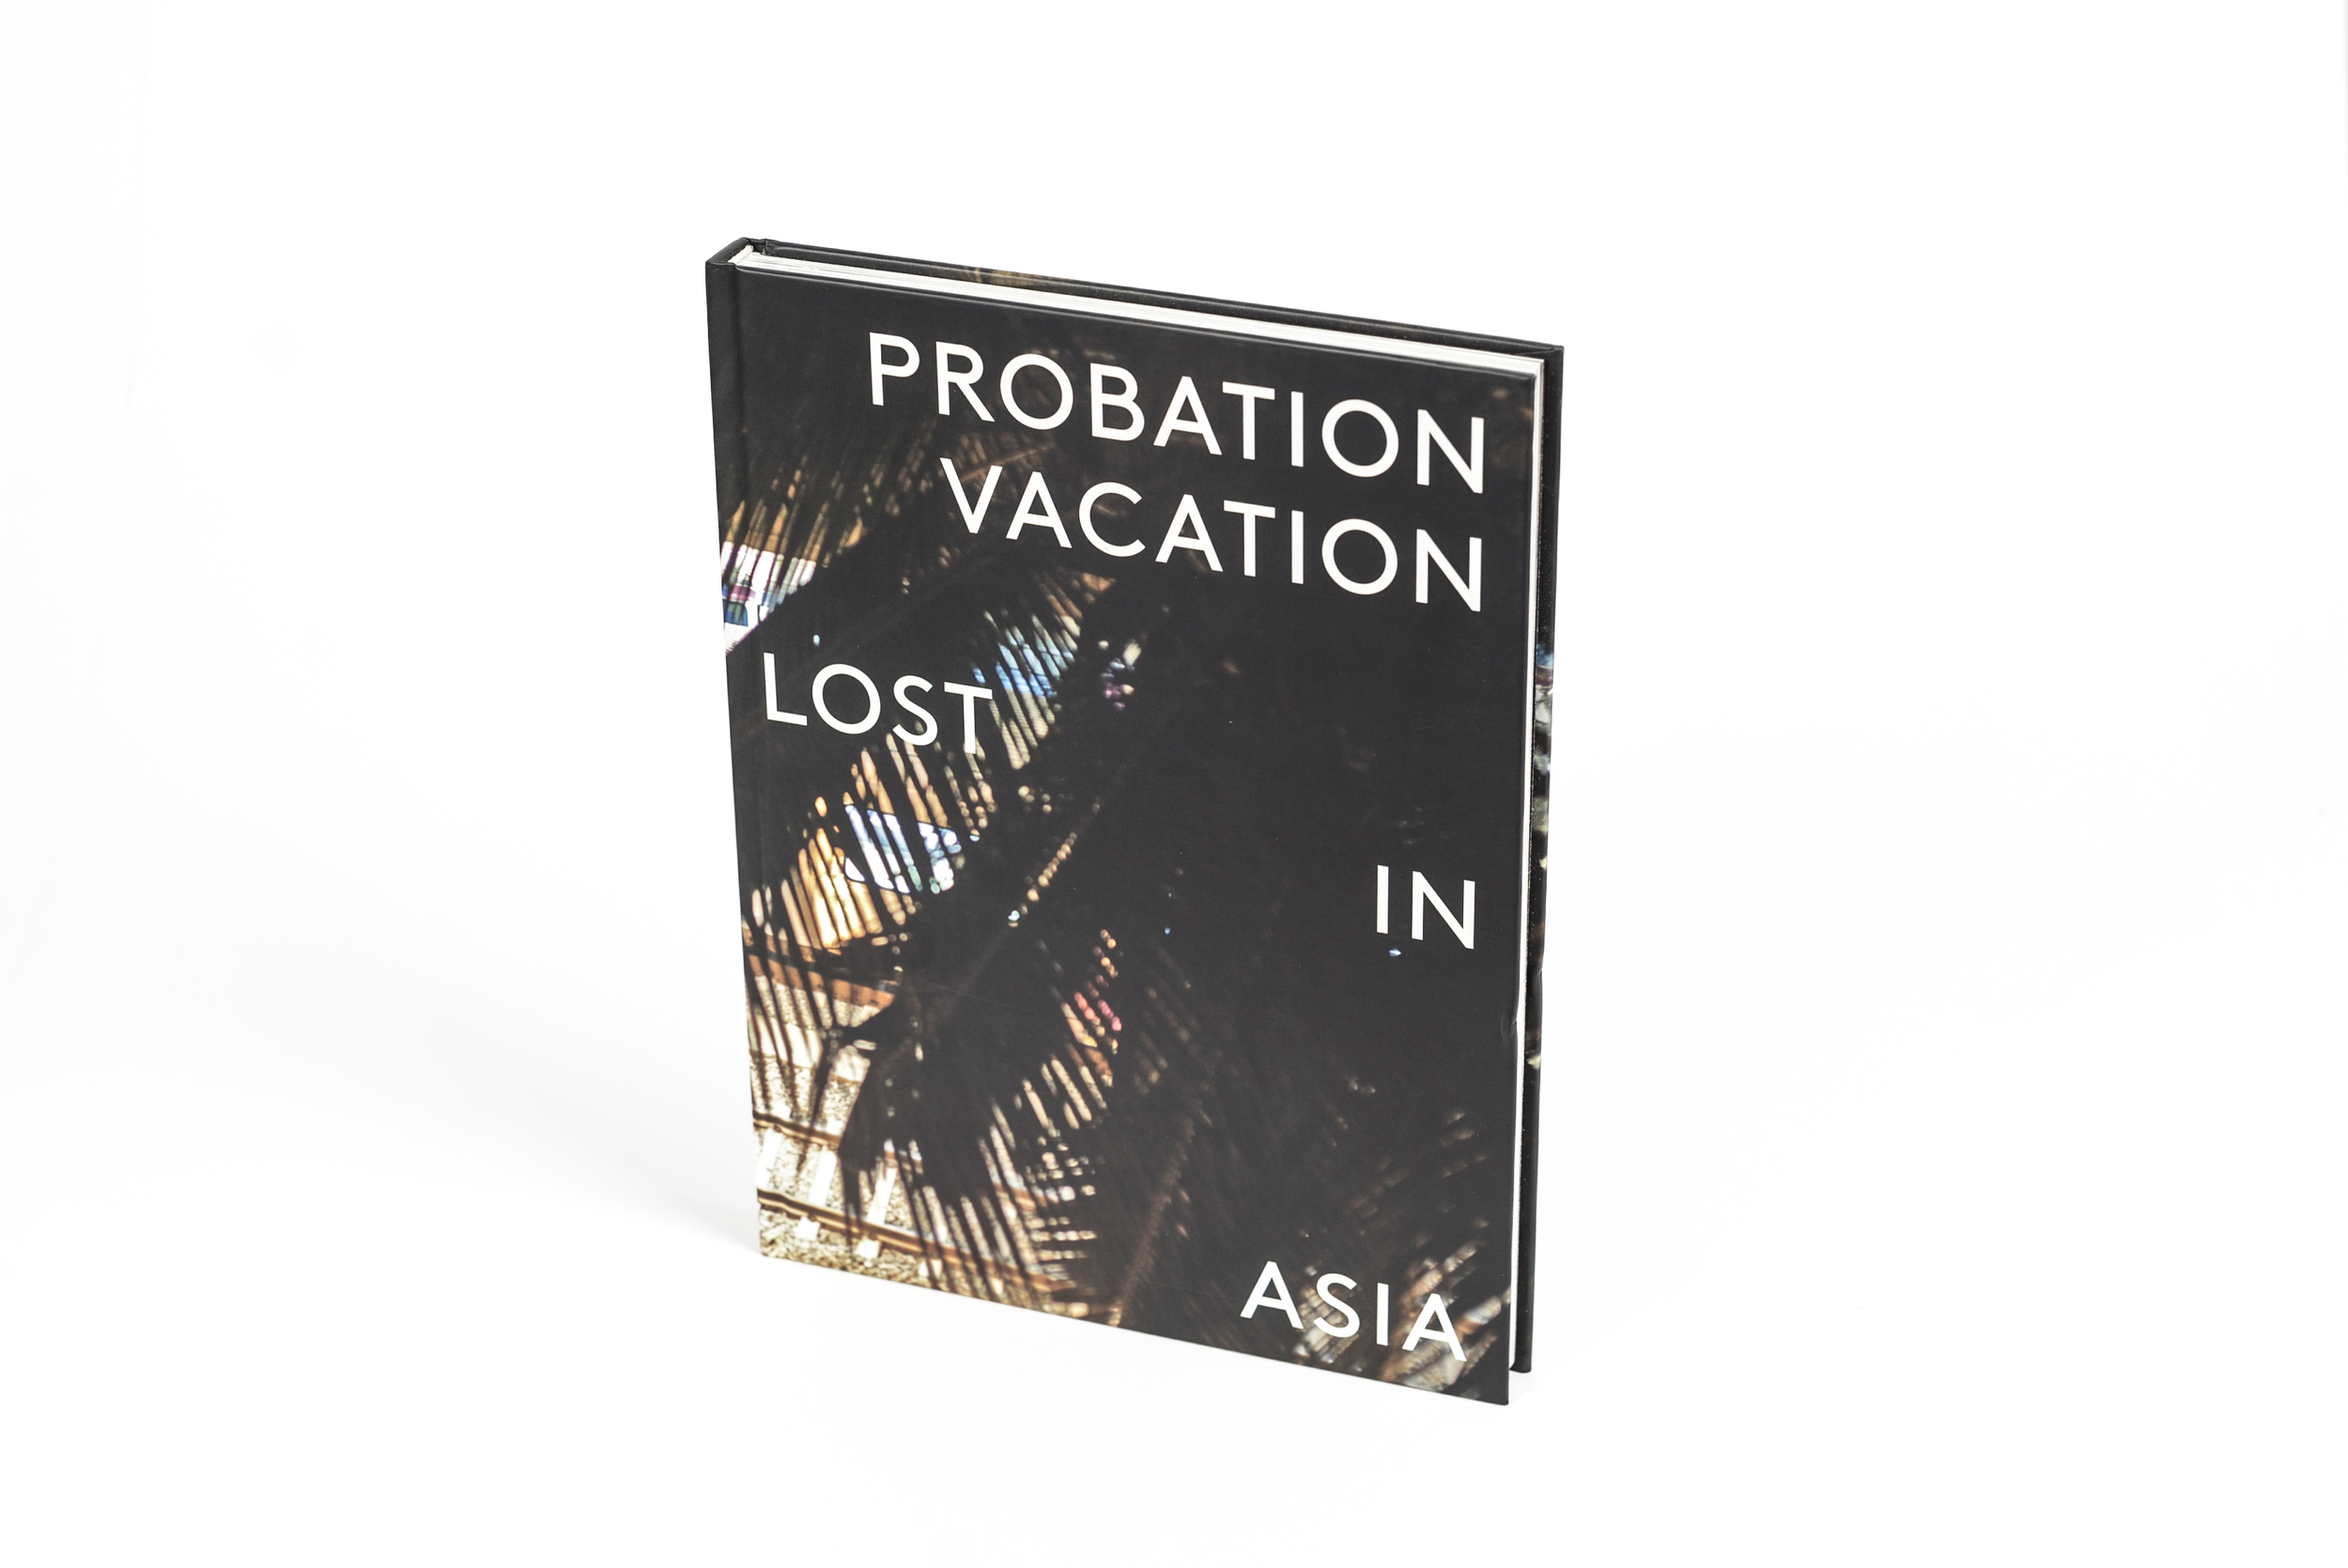 UTAH_ETHER_PROBATION_VACATION_LOST_IN_ASIA_BOOK_THE_GRIFTERS_PUBLISHING-1.jpg